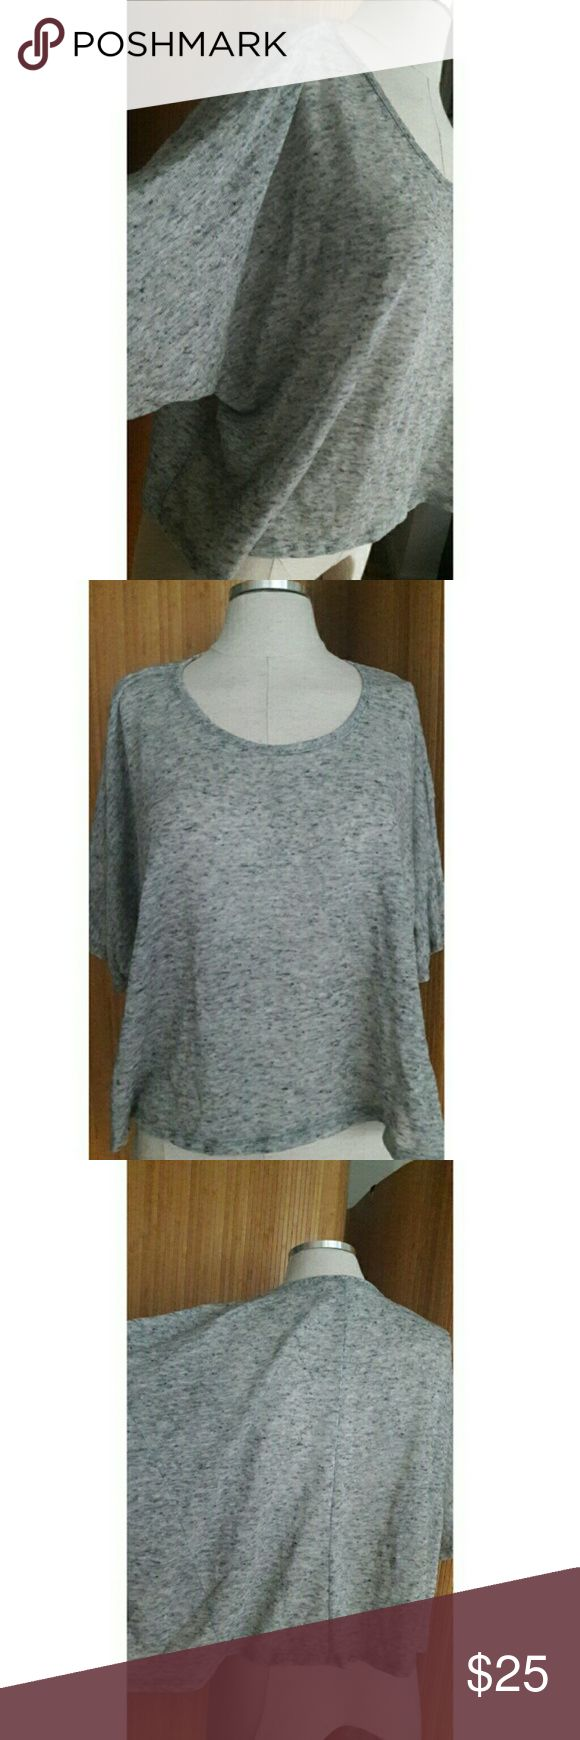 BCBGeneration xs-med Heather Gray knit top This pre-loved BCBGeneration knit to is sized xs, but can still give an oversized look if your a medium.  Great Condition with no holes, nor snags. Light knit. BCBGENERATION Tops Crop Tops